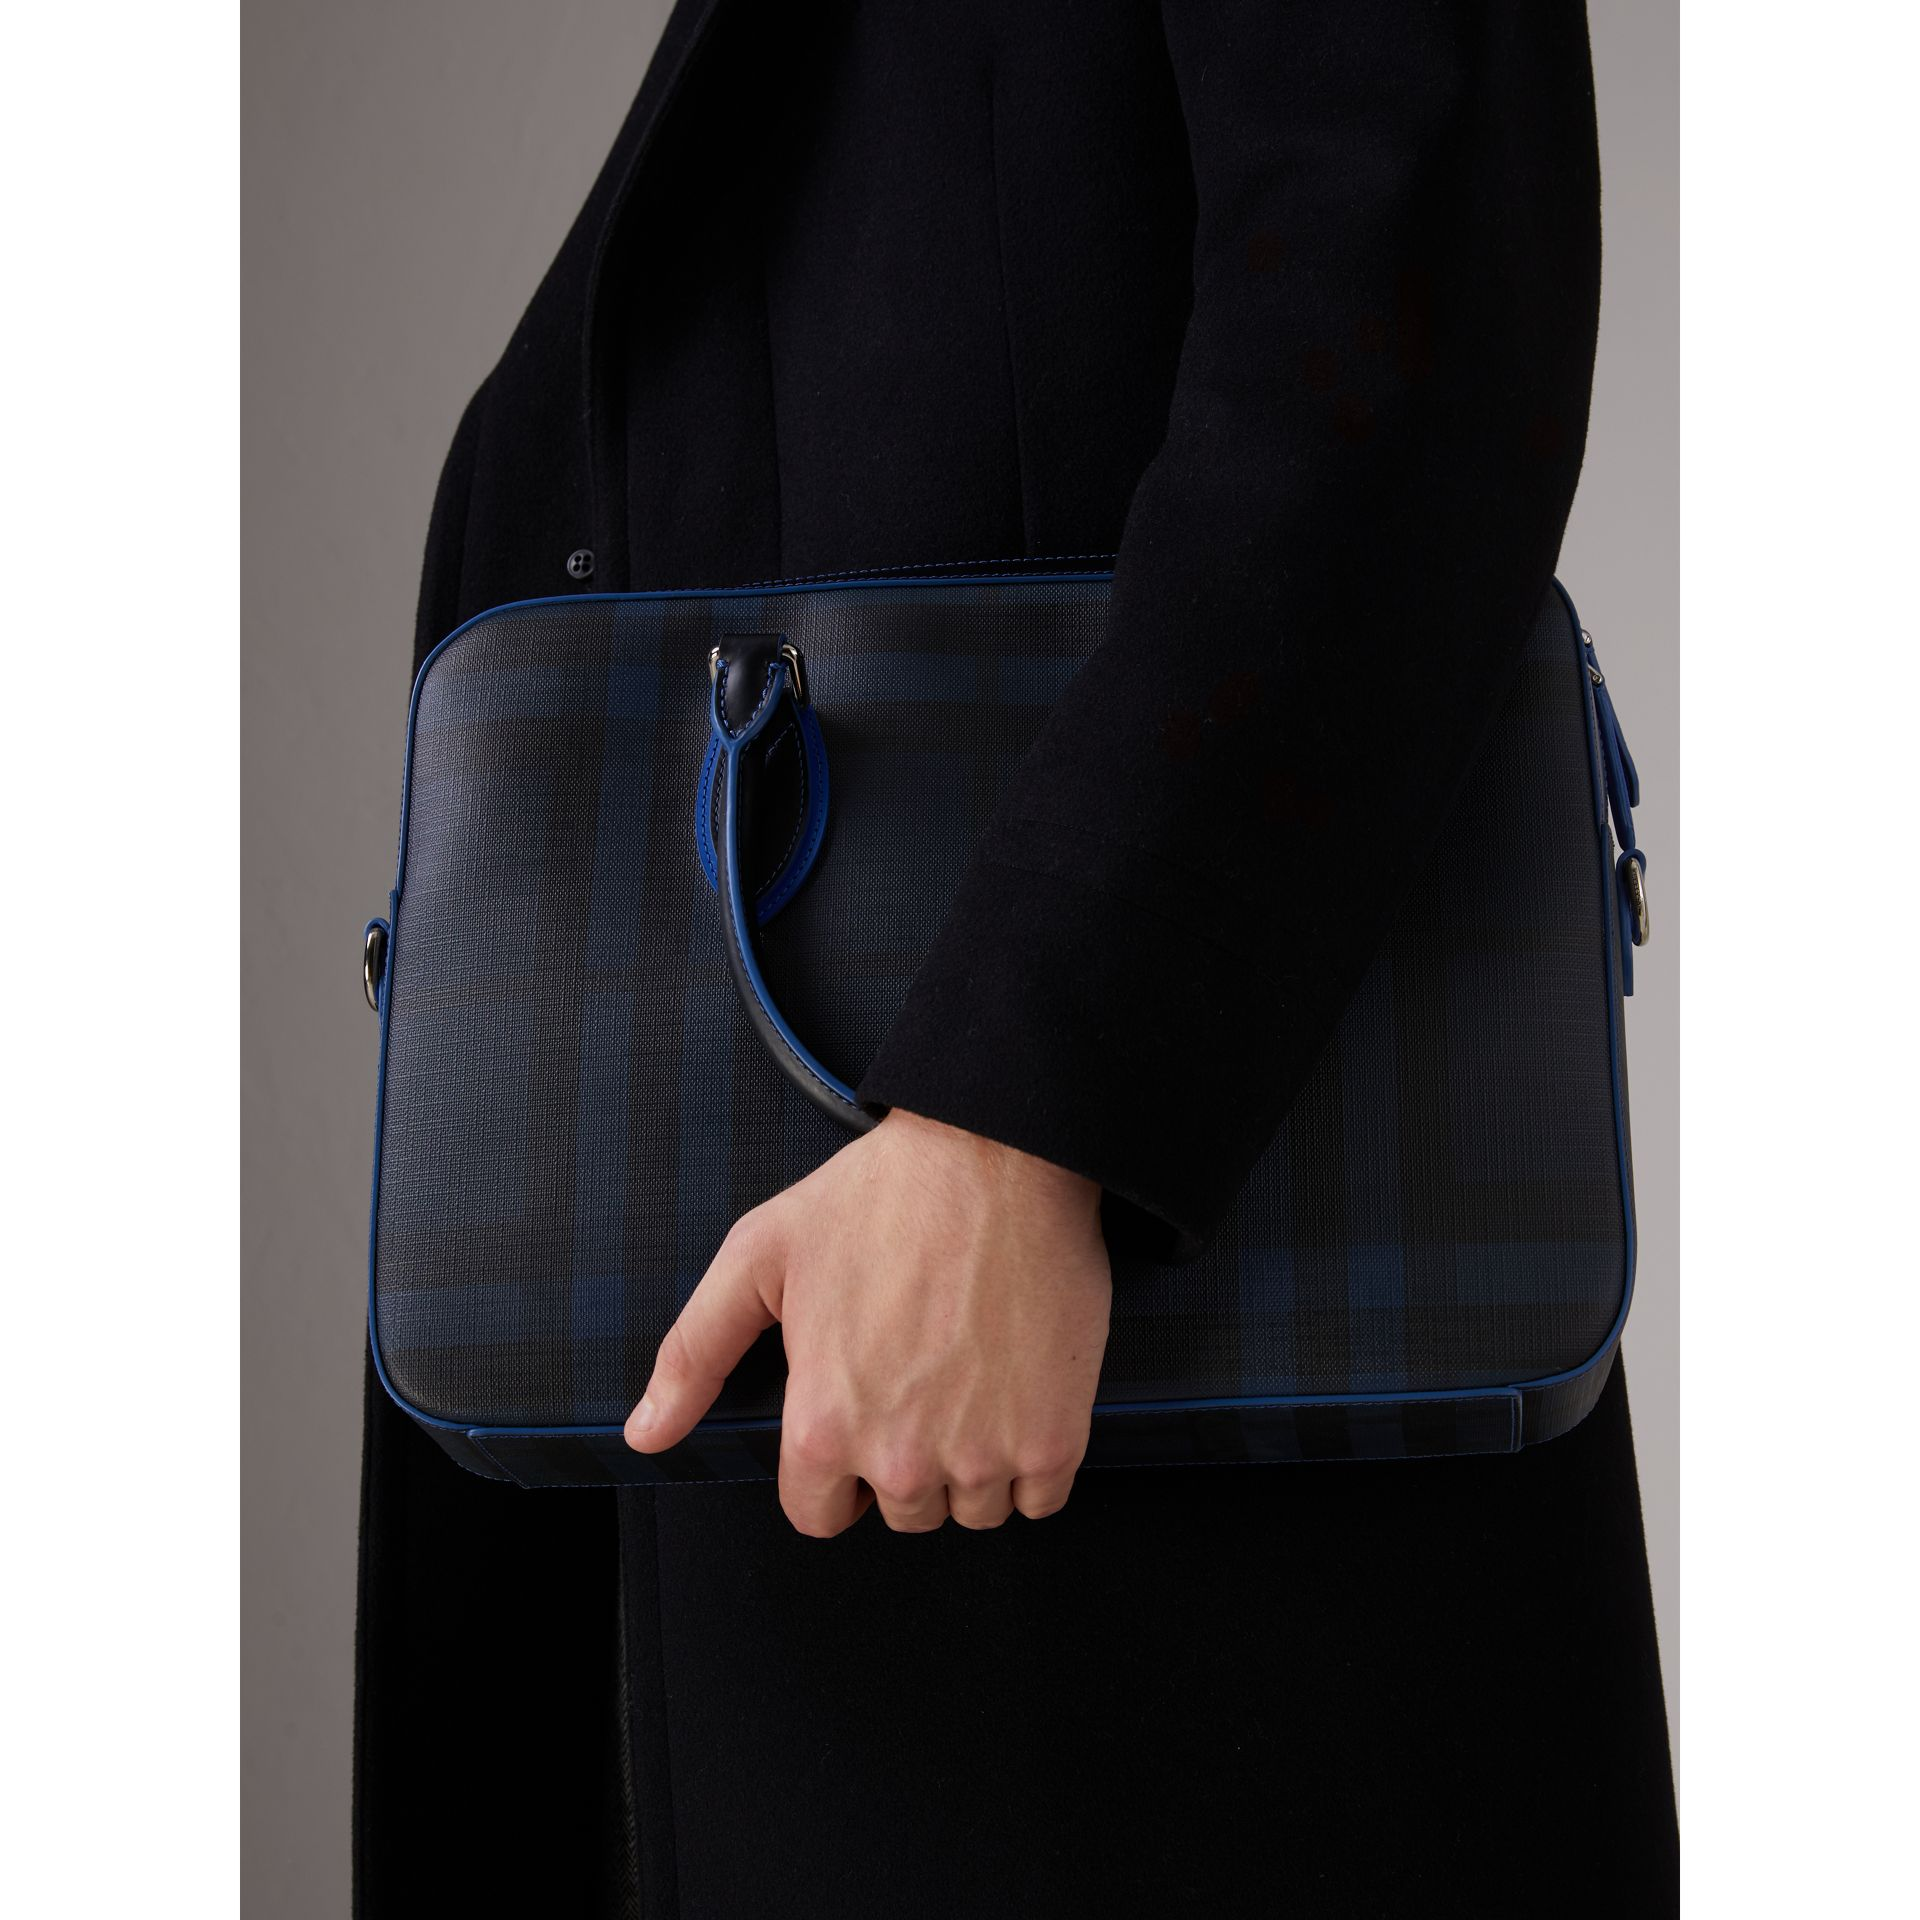 Medium Leather Trim London Check Briefcase in Navy/blue - Men | Burberry - gallery image 3